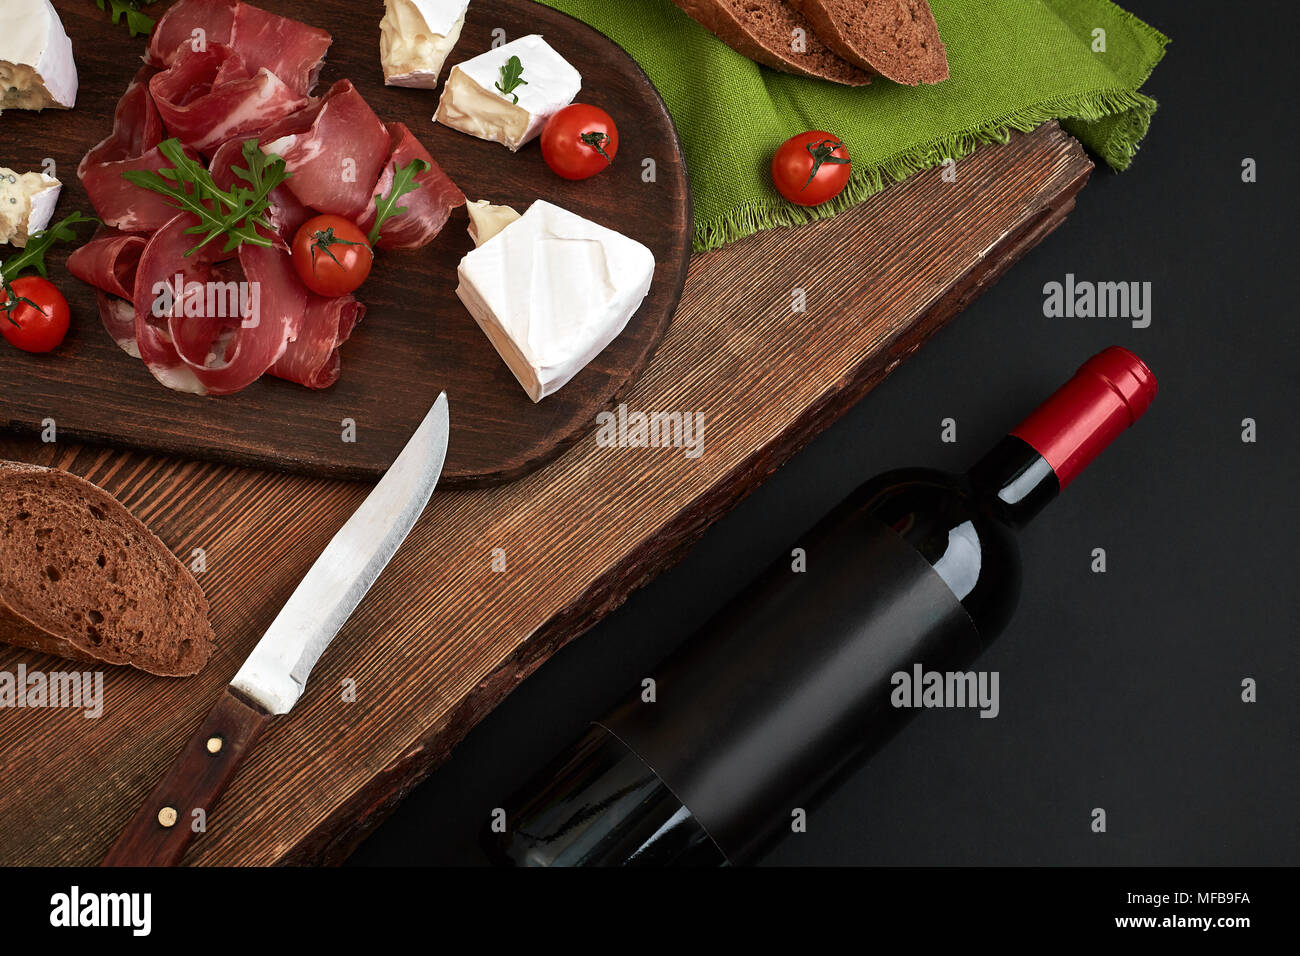 Wine bottle with cheese and traditional sausages on wooden board on black background with copy space - Stock Image